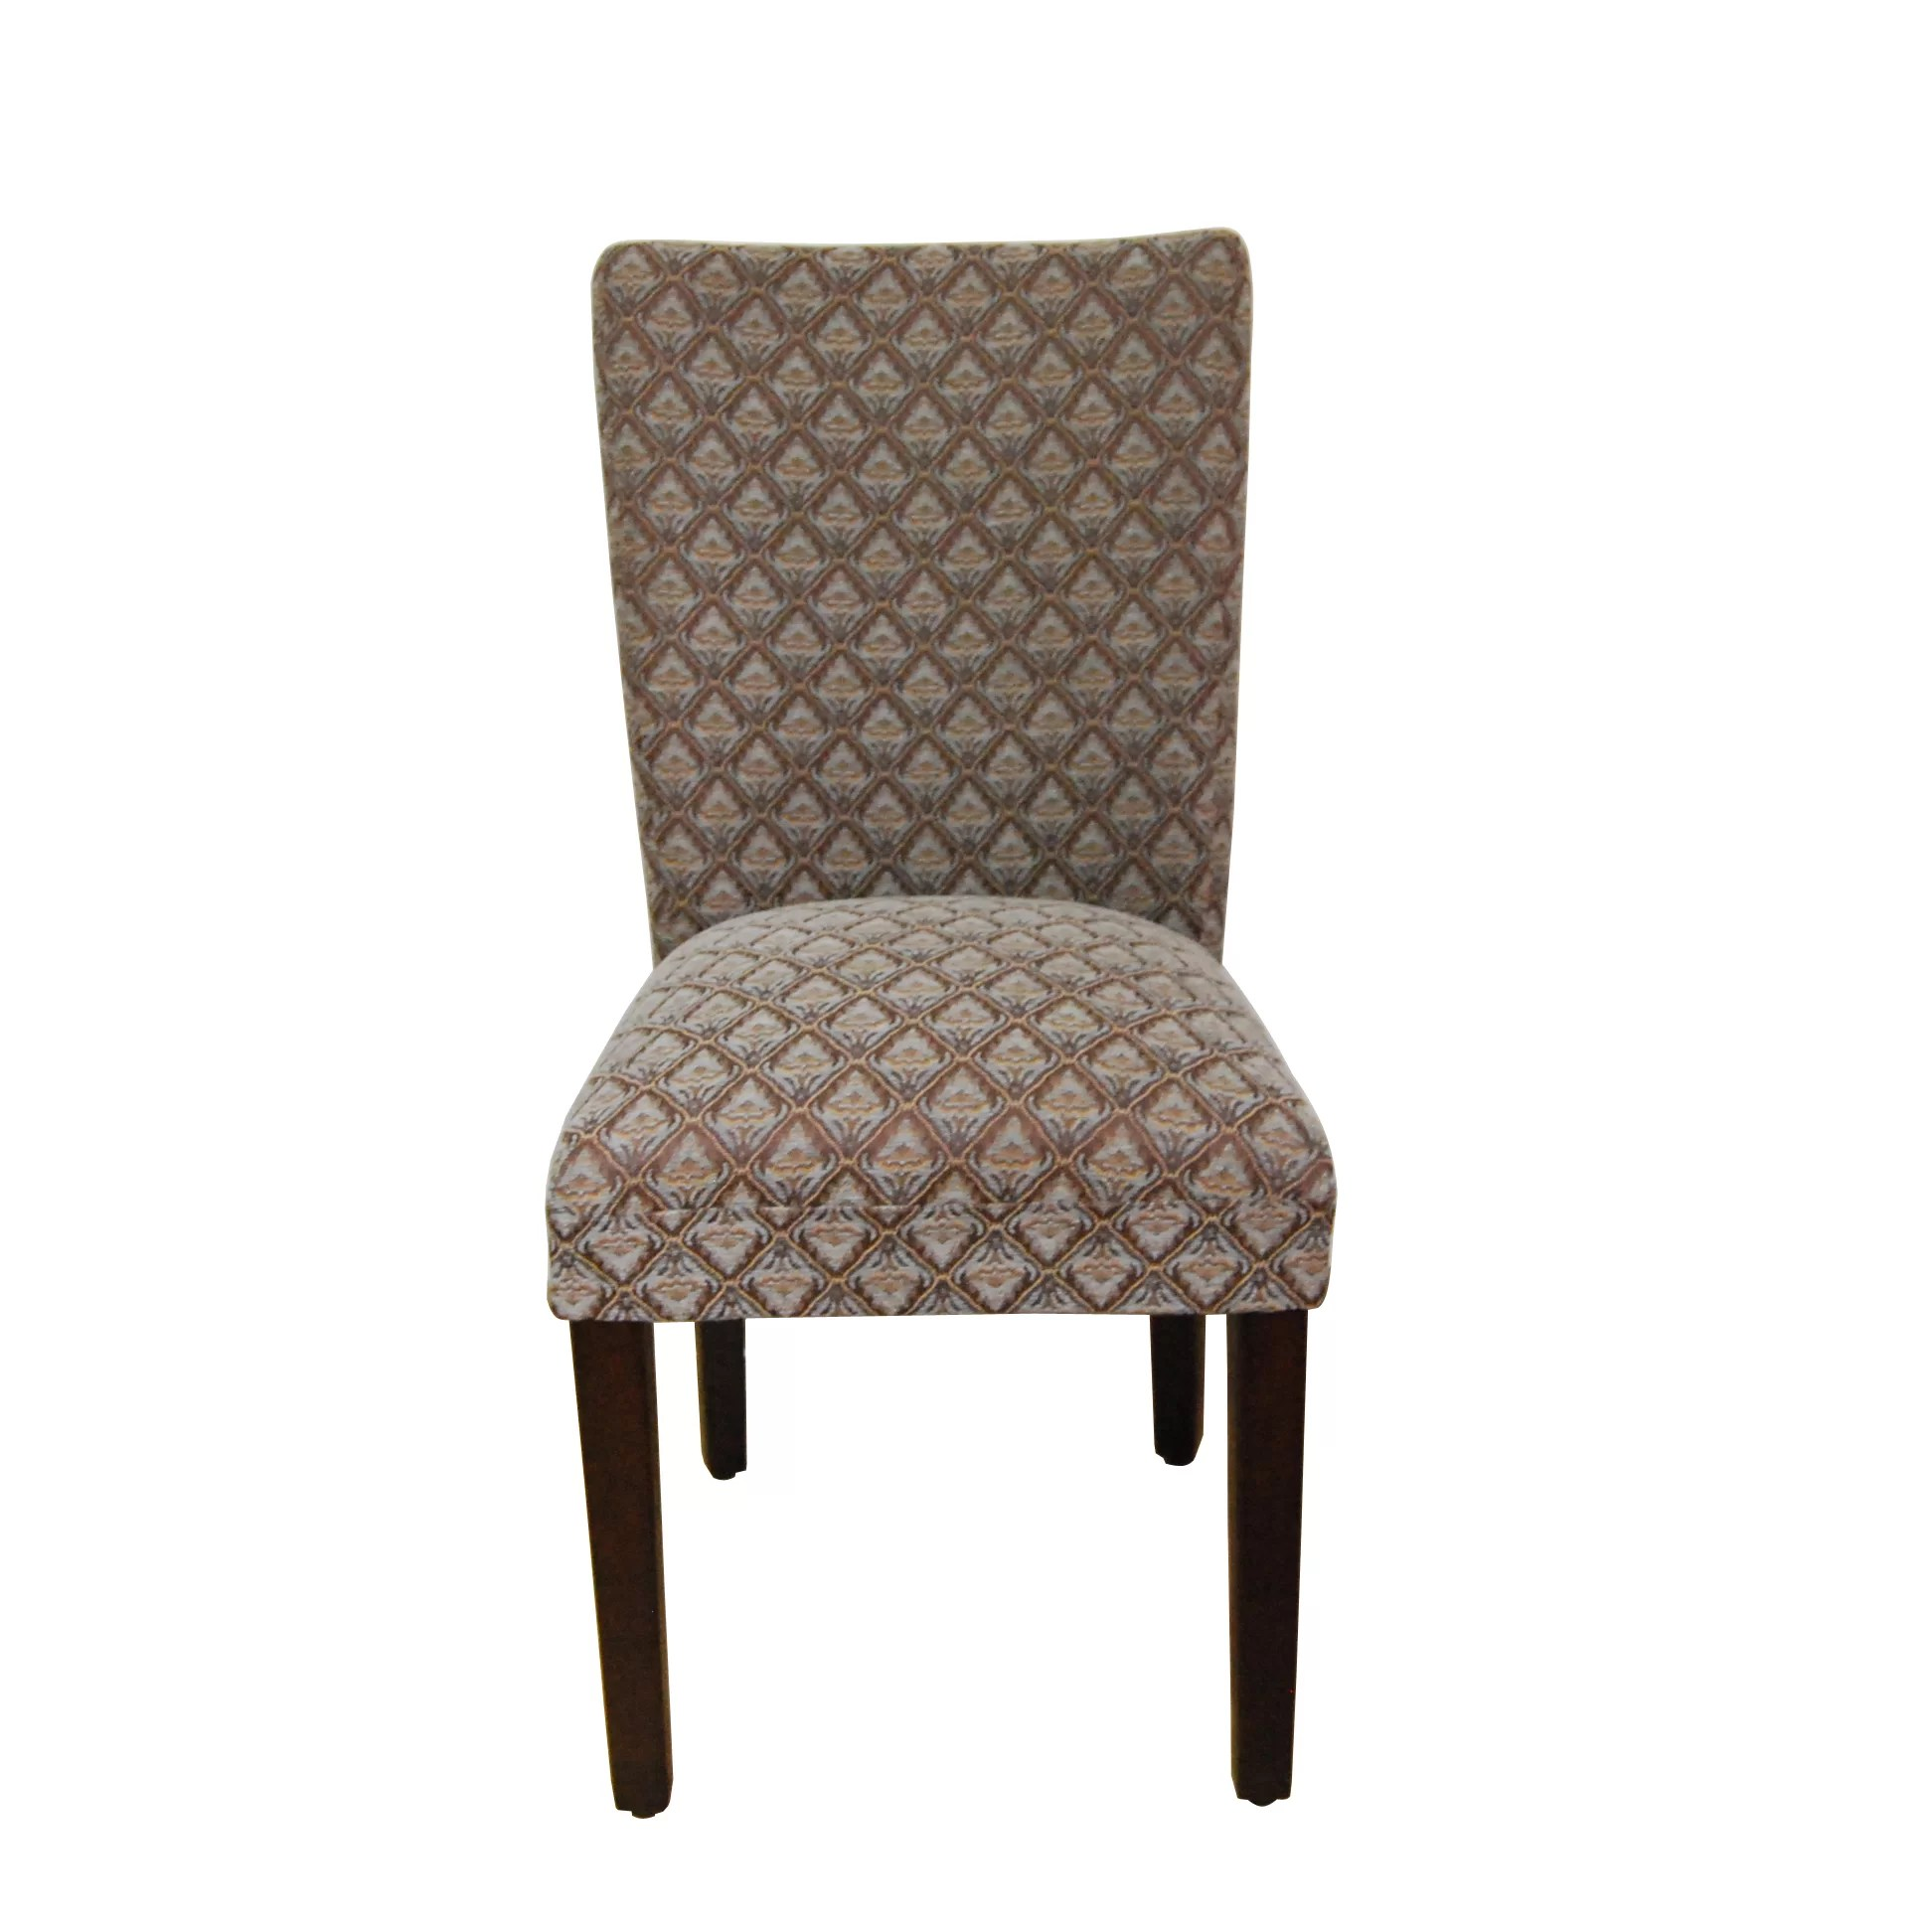 Blue Parsons Chair Homepop Kinfine Classic Upholstered Parsons Chair